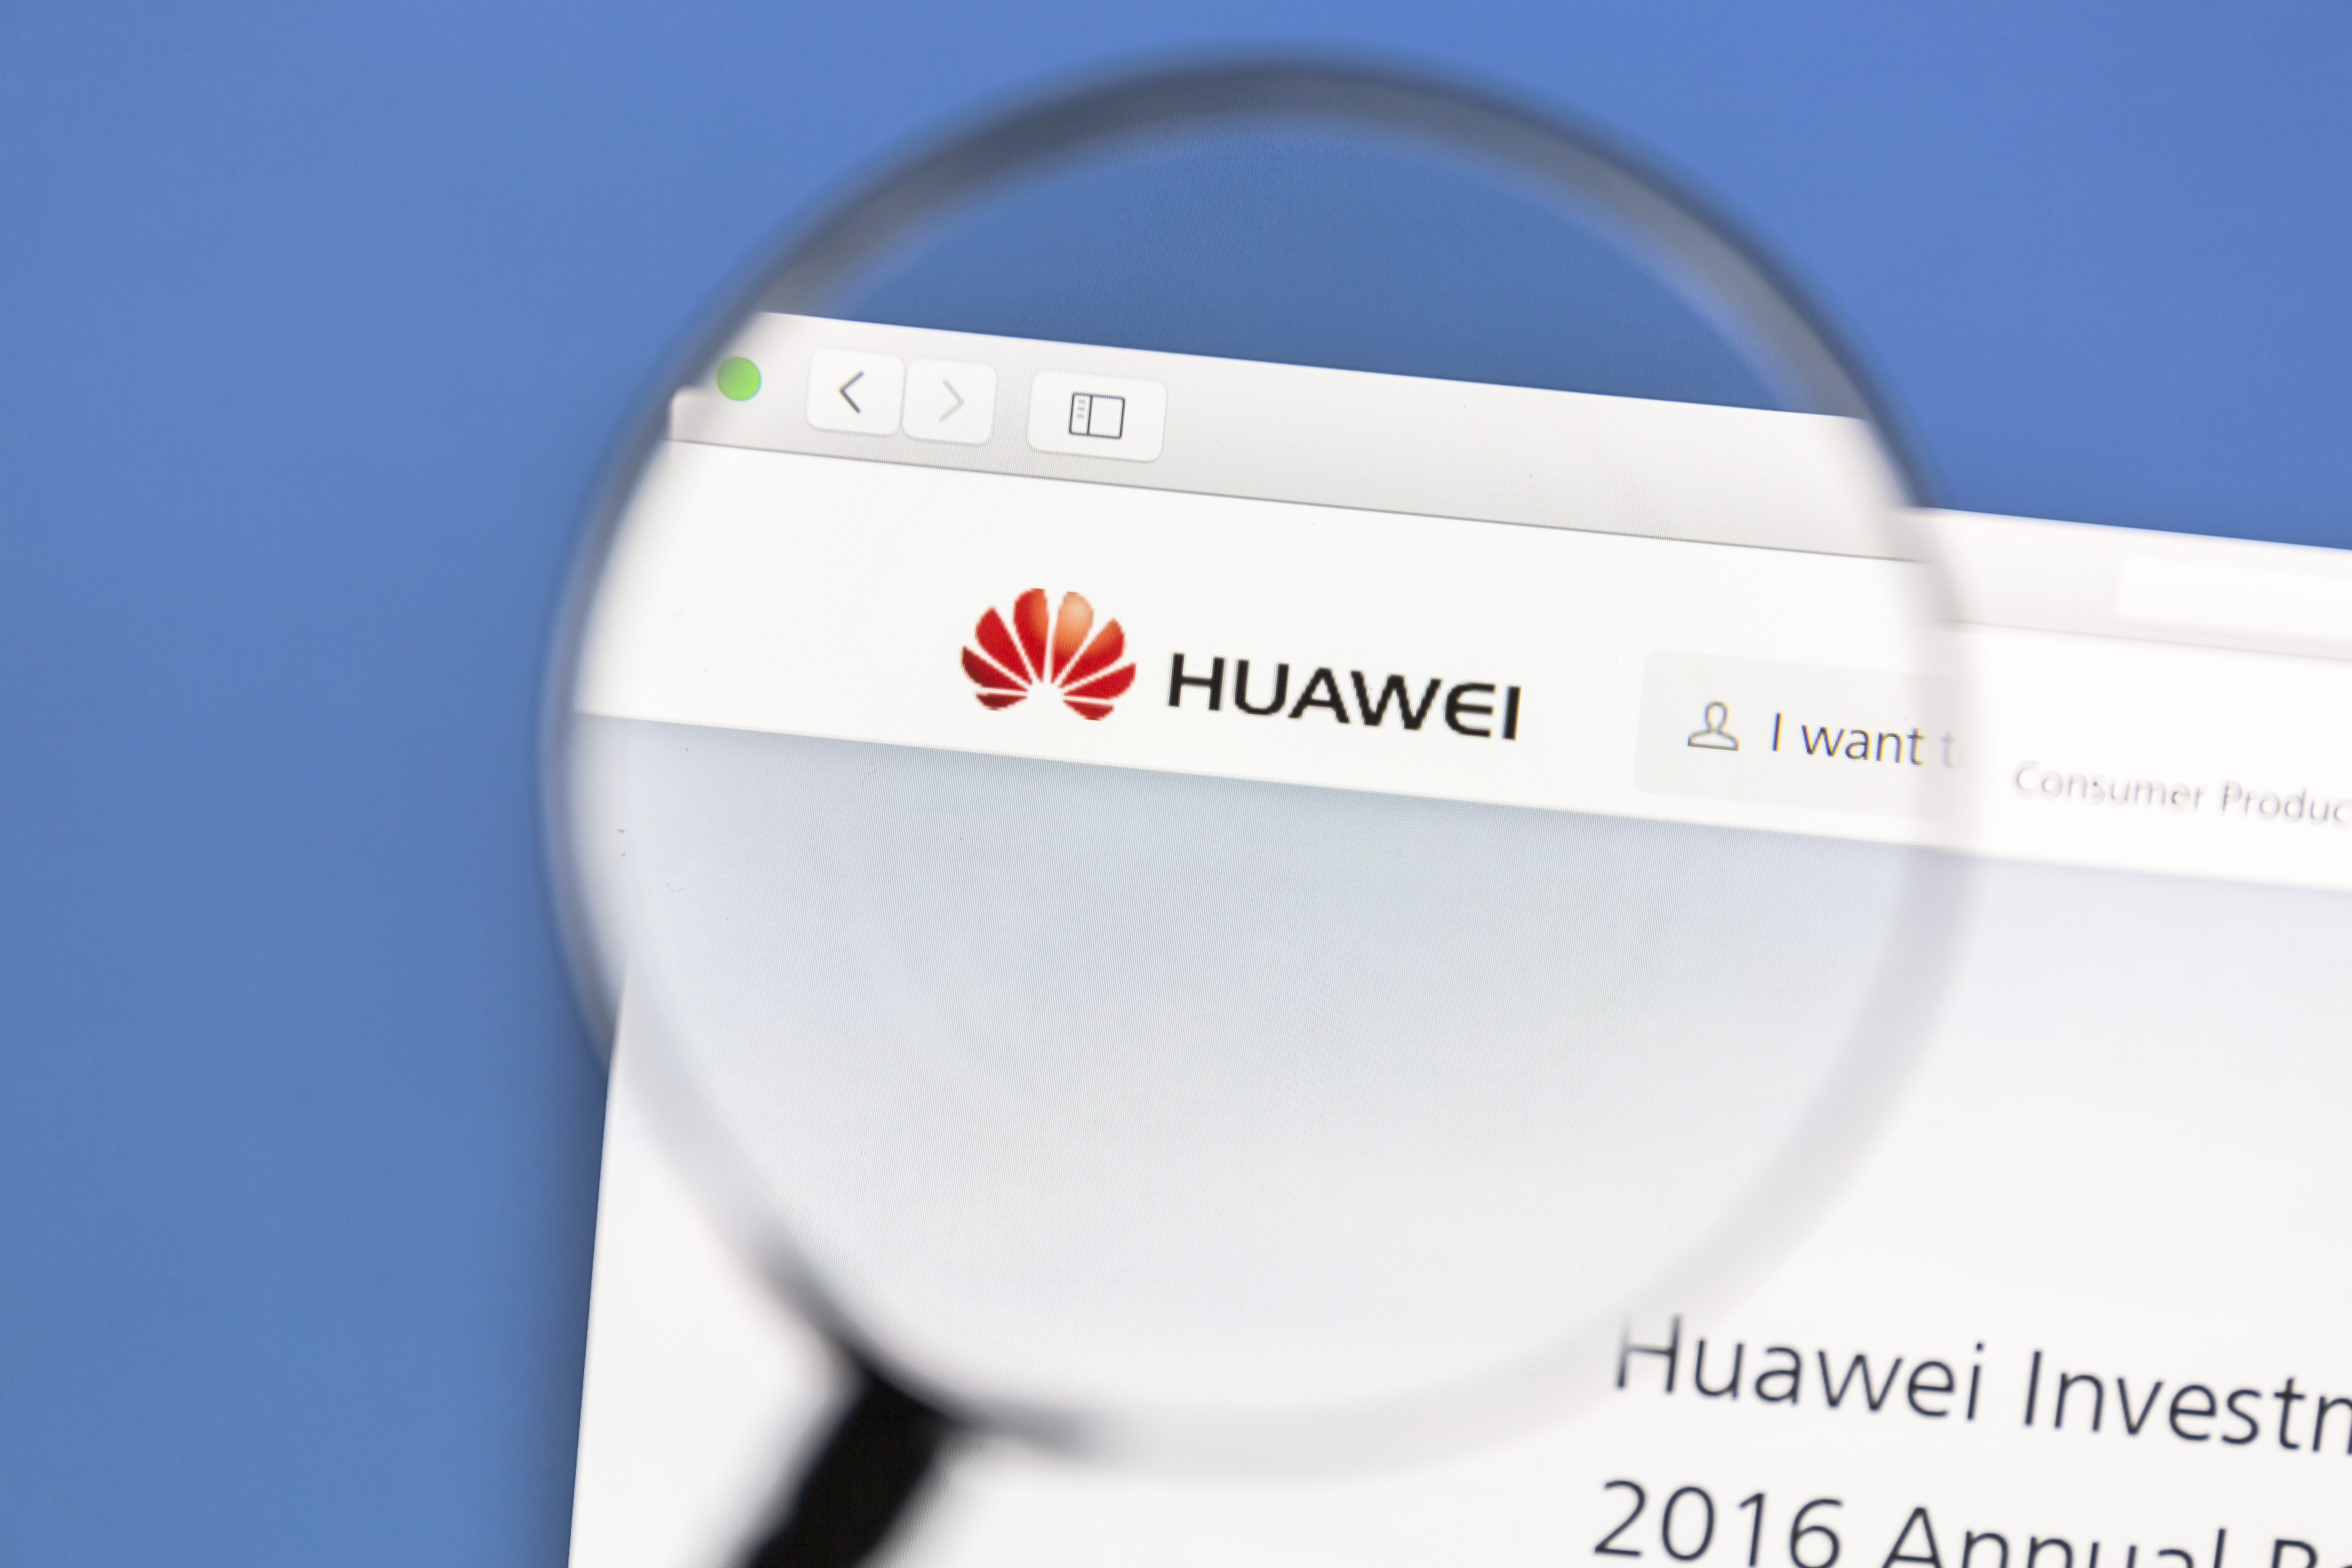 Sweden joins others in banning Huawei from 5G infrastructure projects